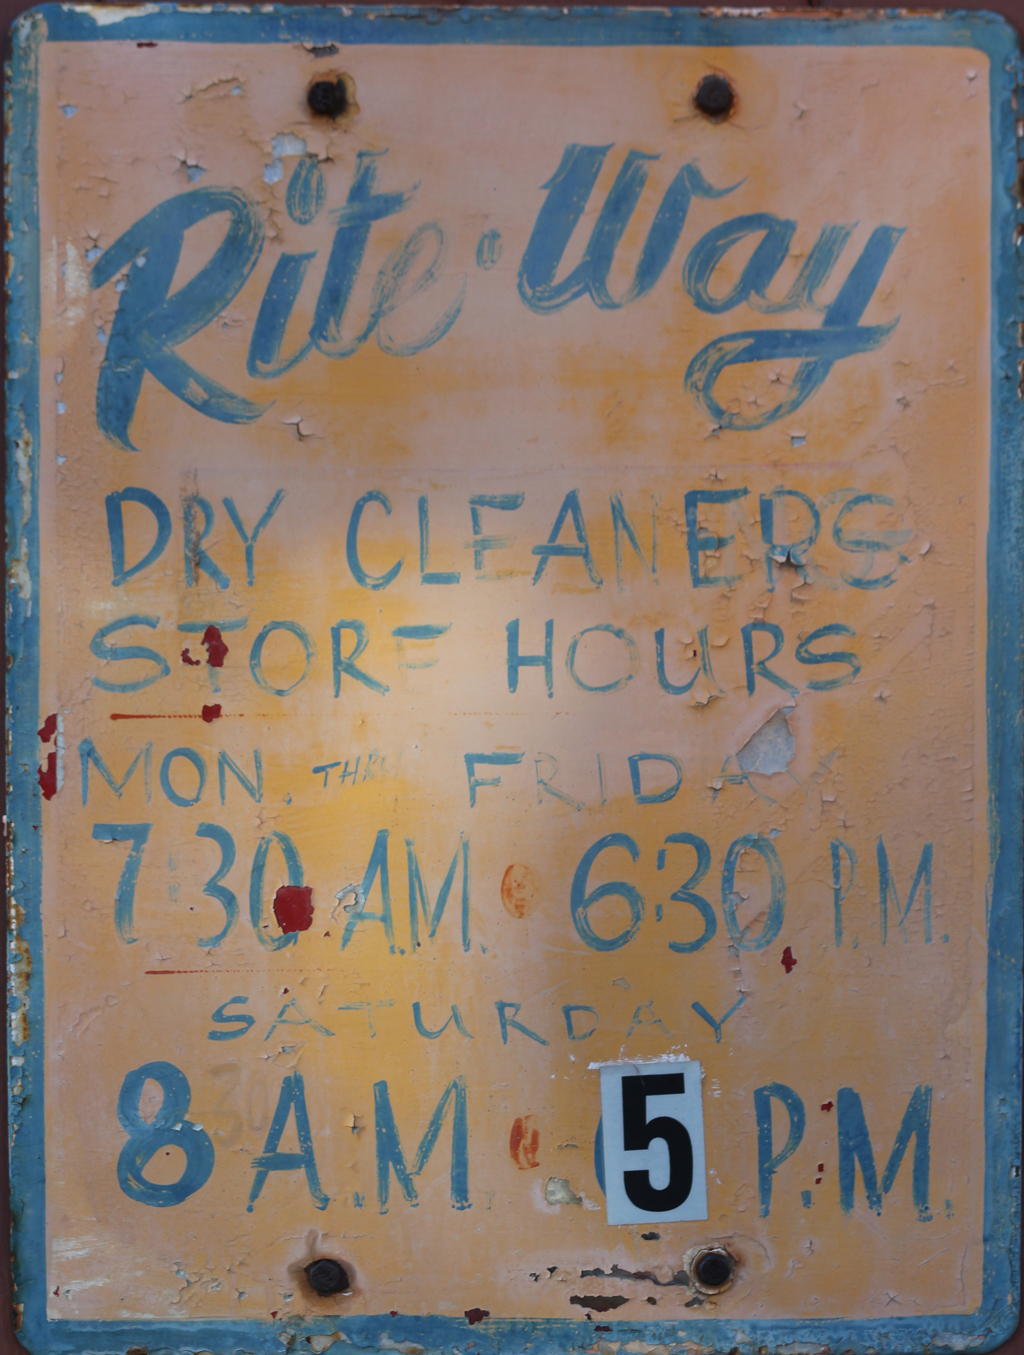 Rite-Way Dry Cleaners hours of operation sign. Cambridge, Massachusetts.